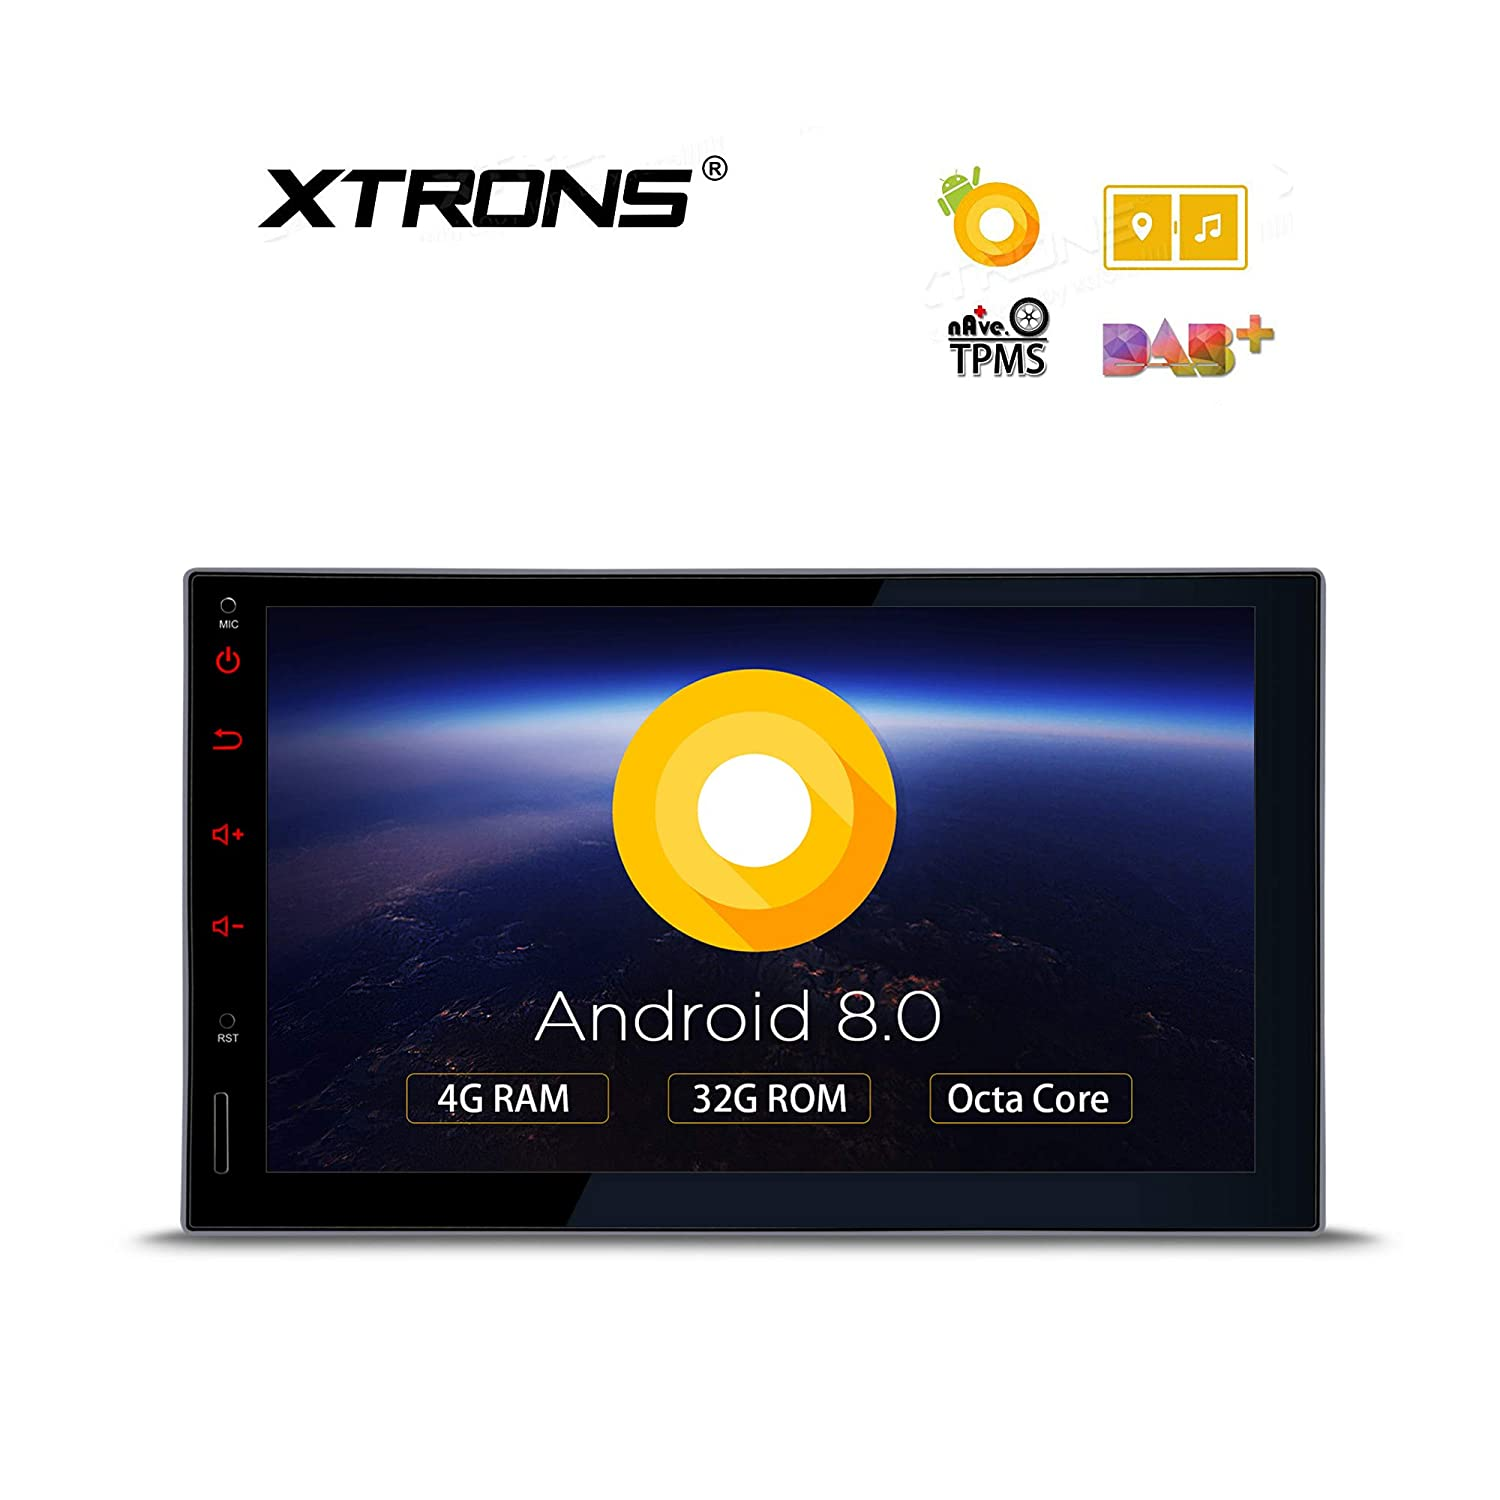 XTRONS 7 Inch Android 8 0 Octa Core 4G RAM 32G ROM HD Digital Multi-Touch  Screen Car Stereo GPS Radio OBD2 TPMS Double 2 Din